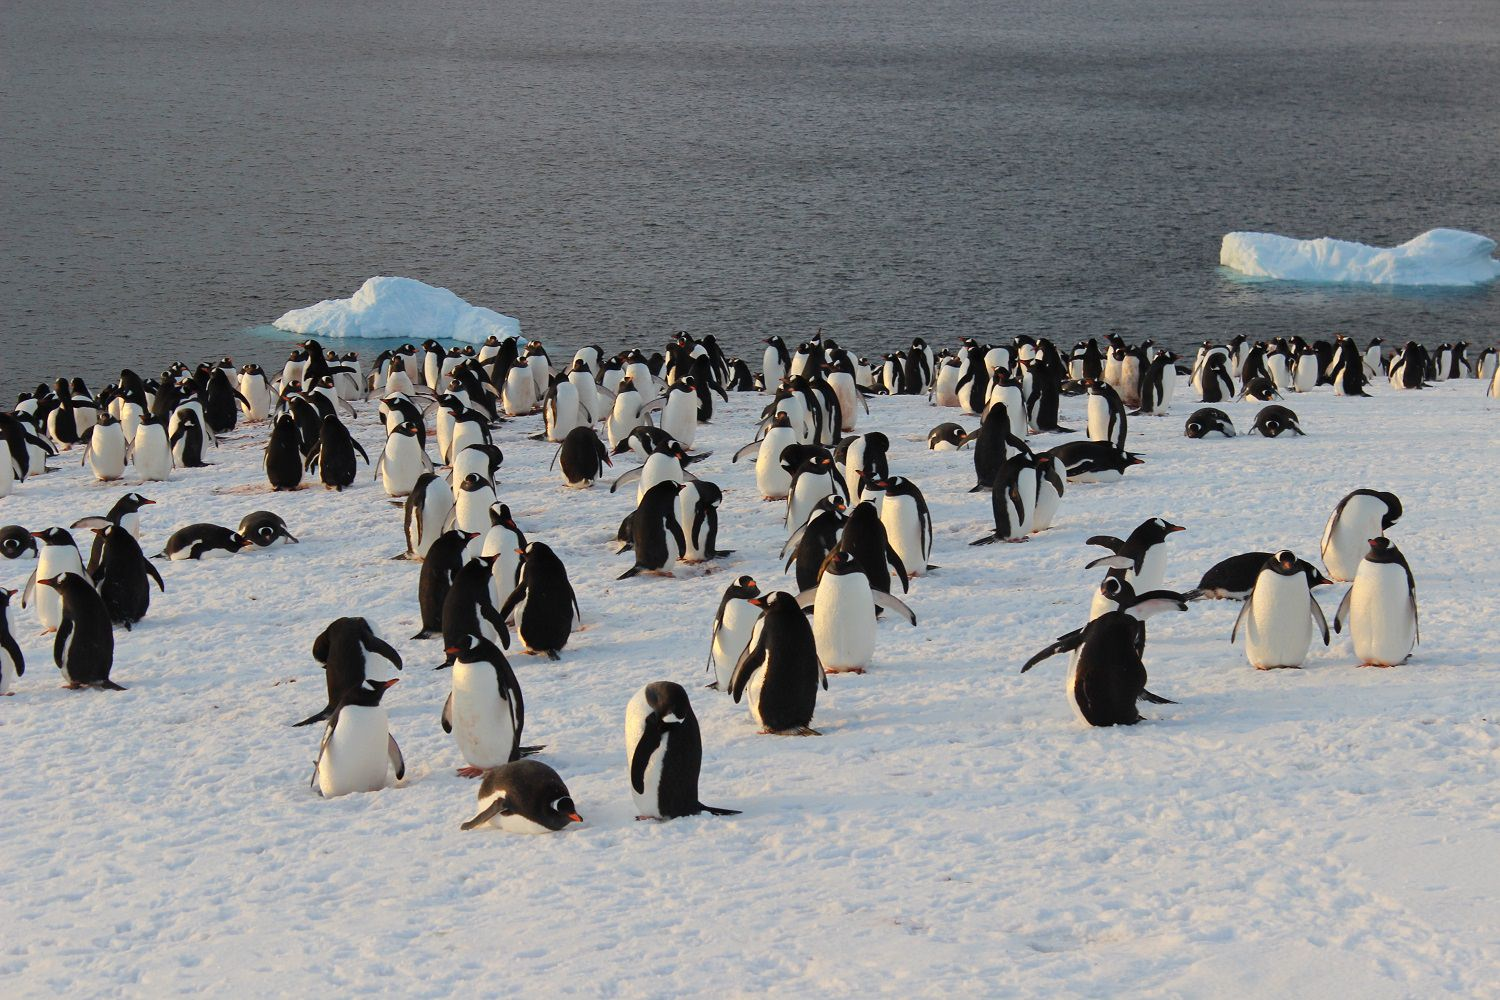 An Evening Penguin Gathering